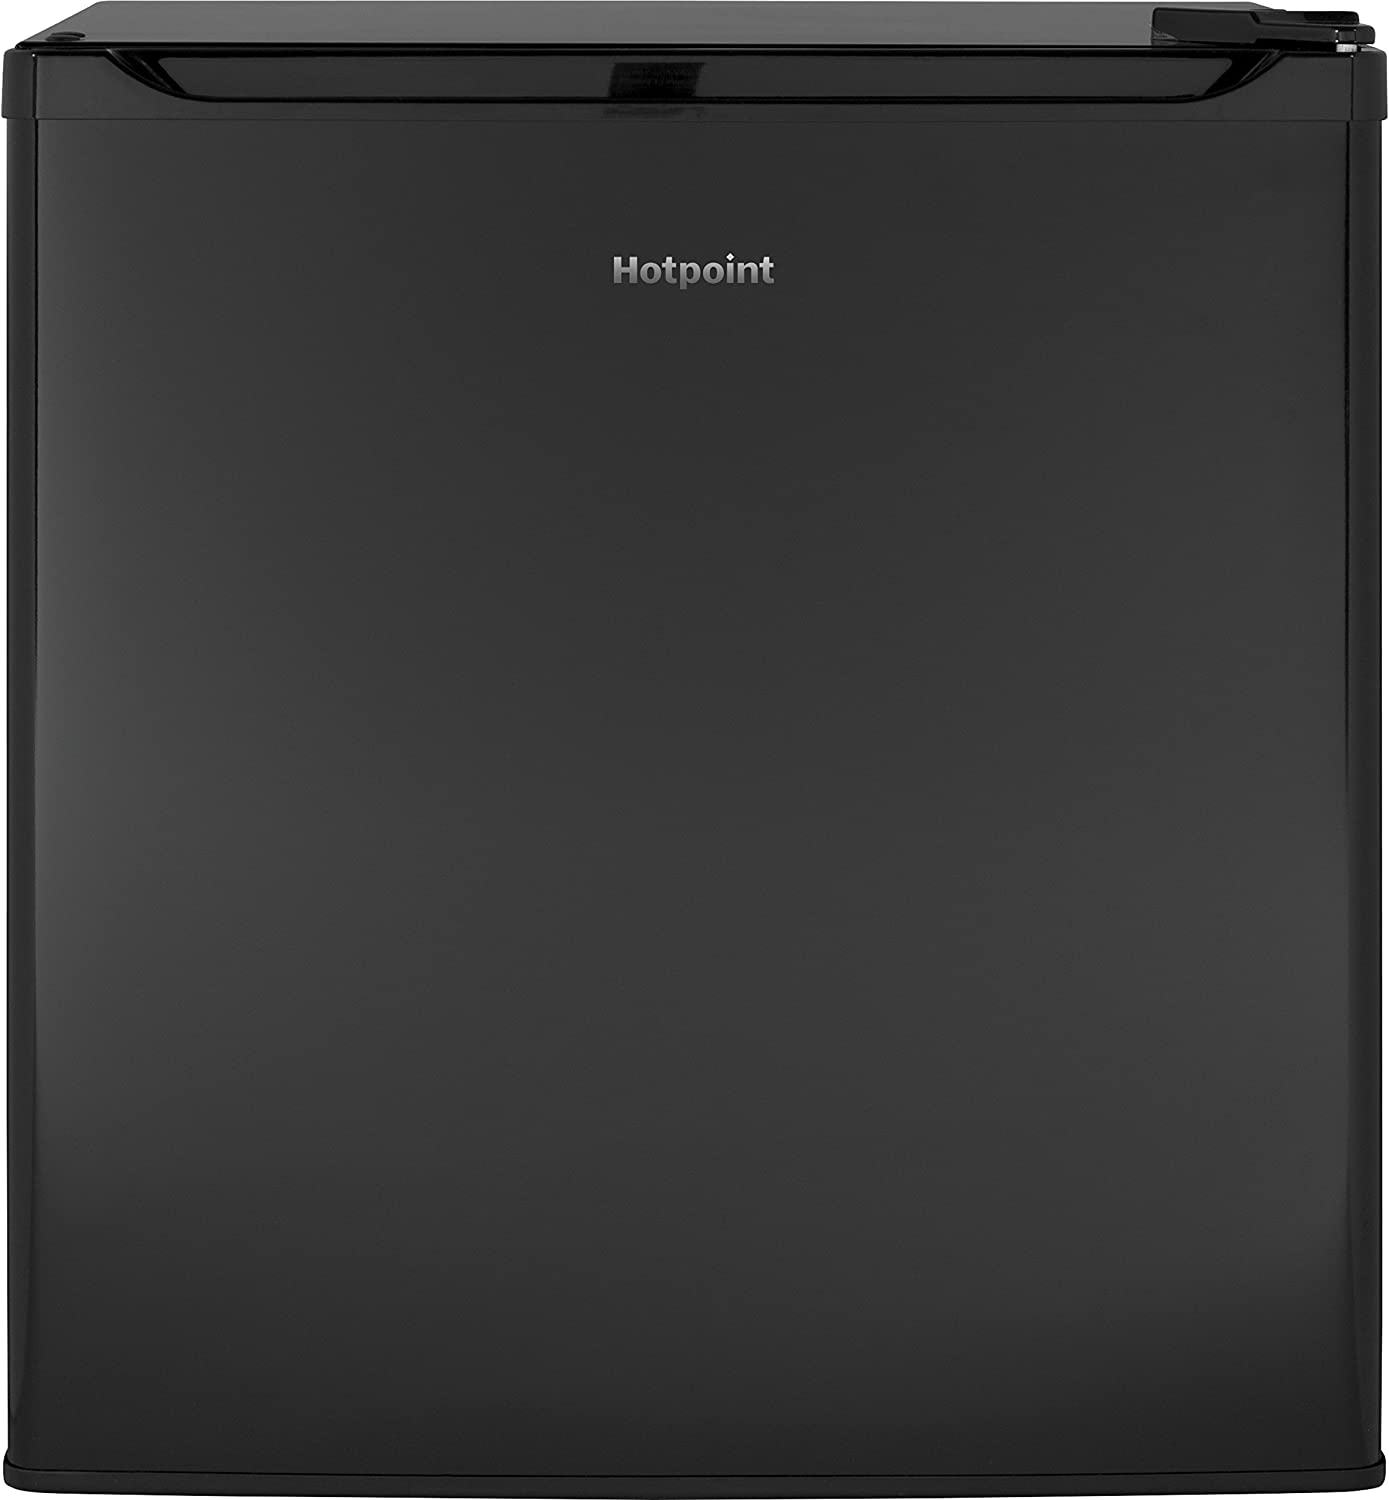 GE Hotpoint Qualified Compact Refrigerator, 1.7 Cu. Ft, Black